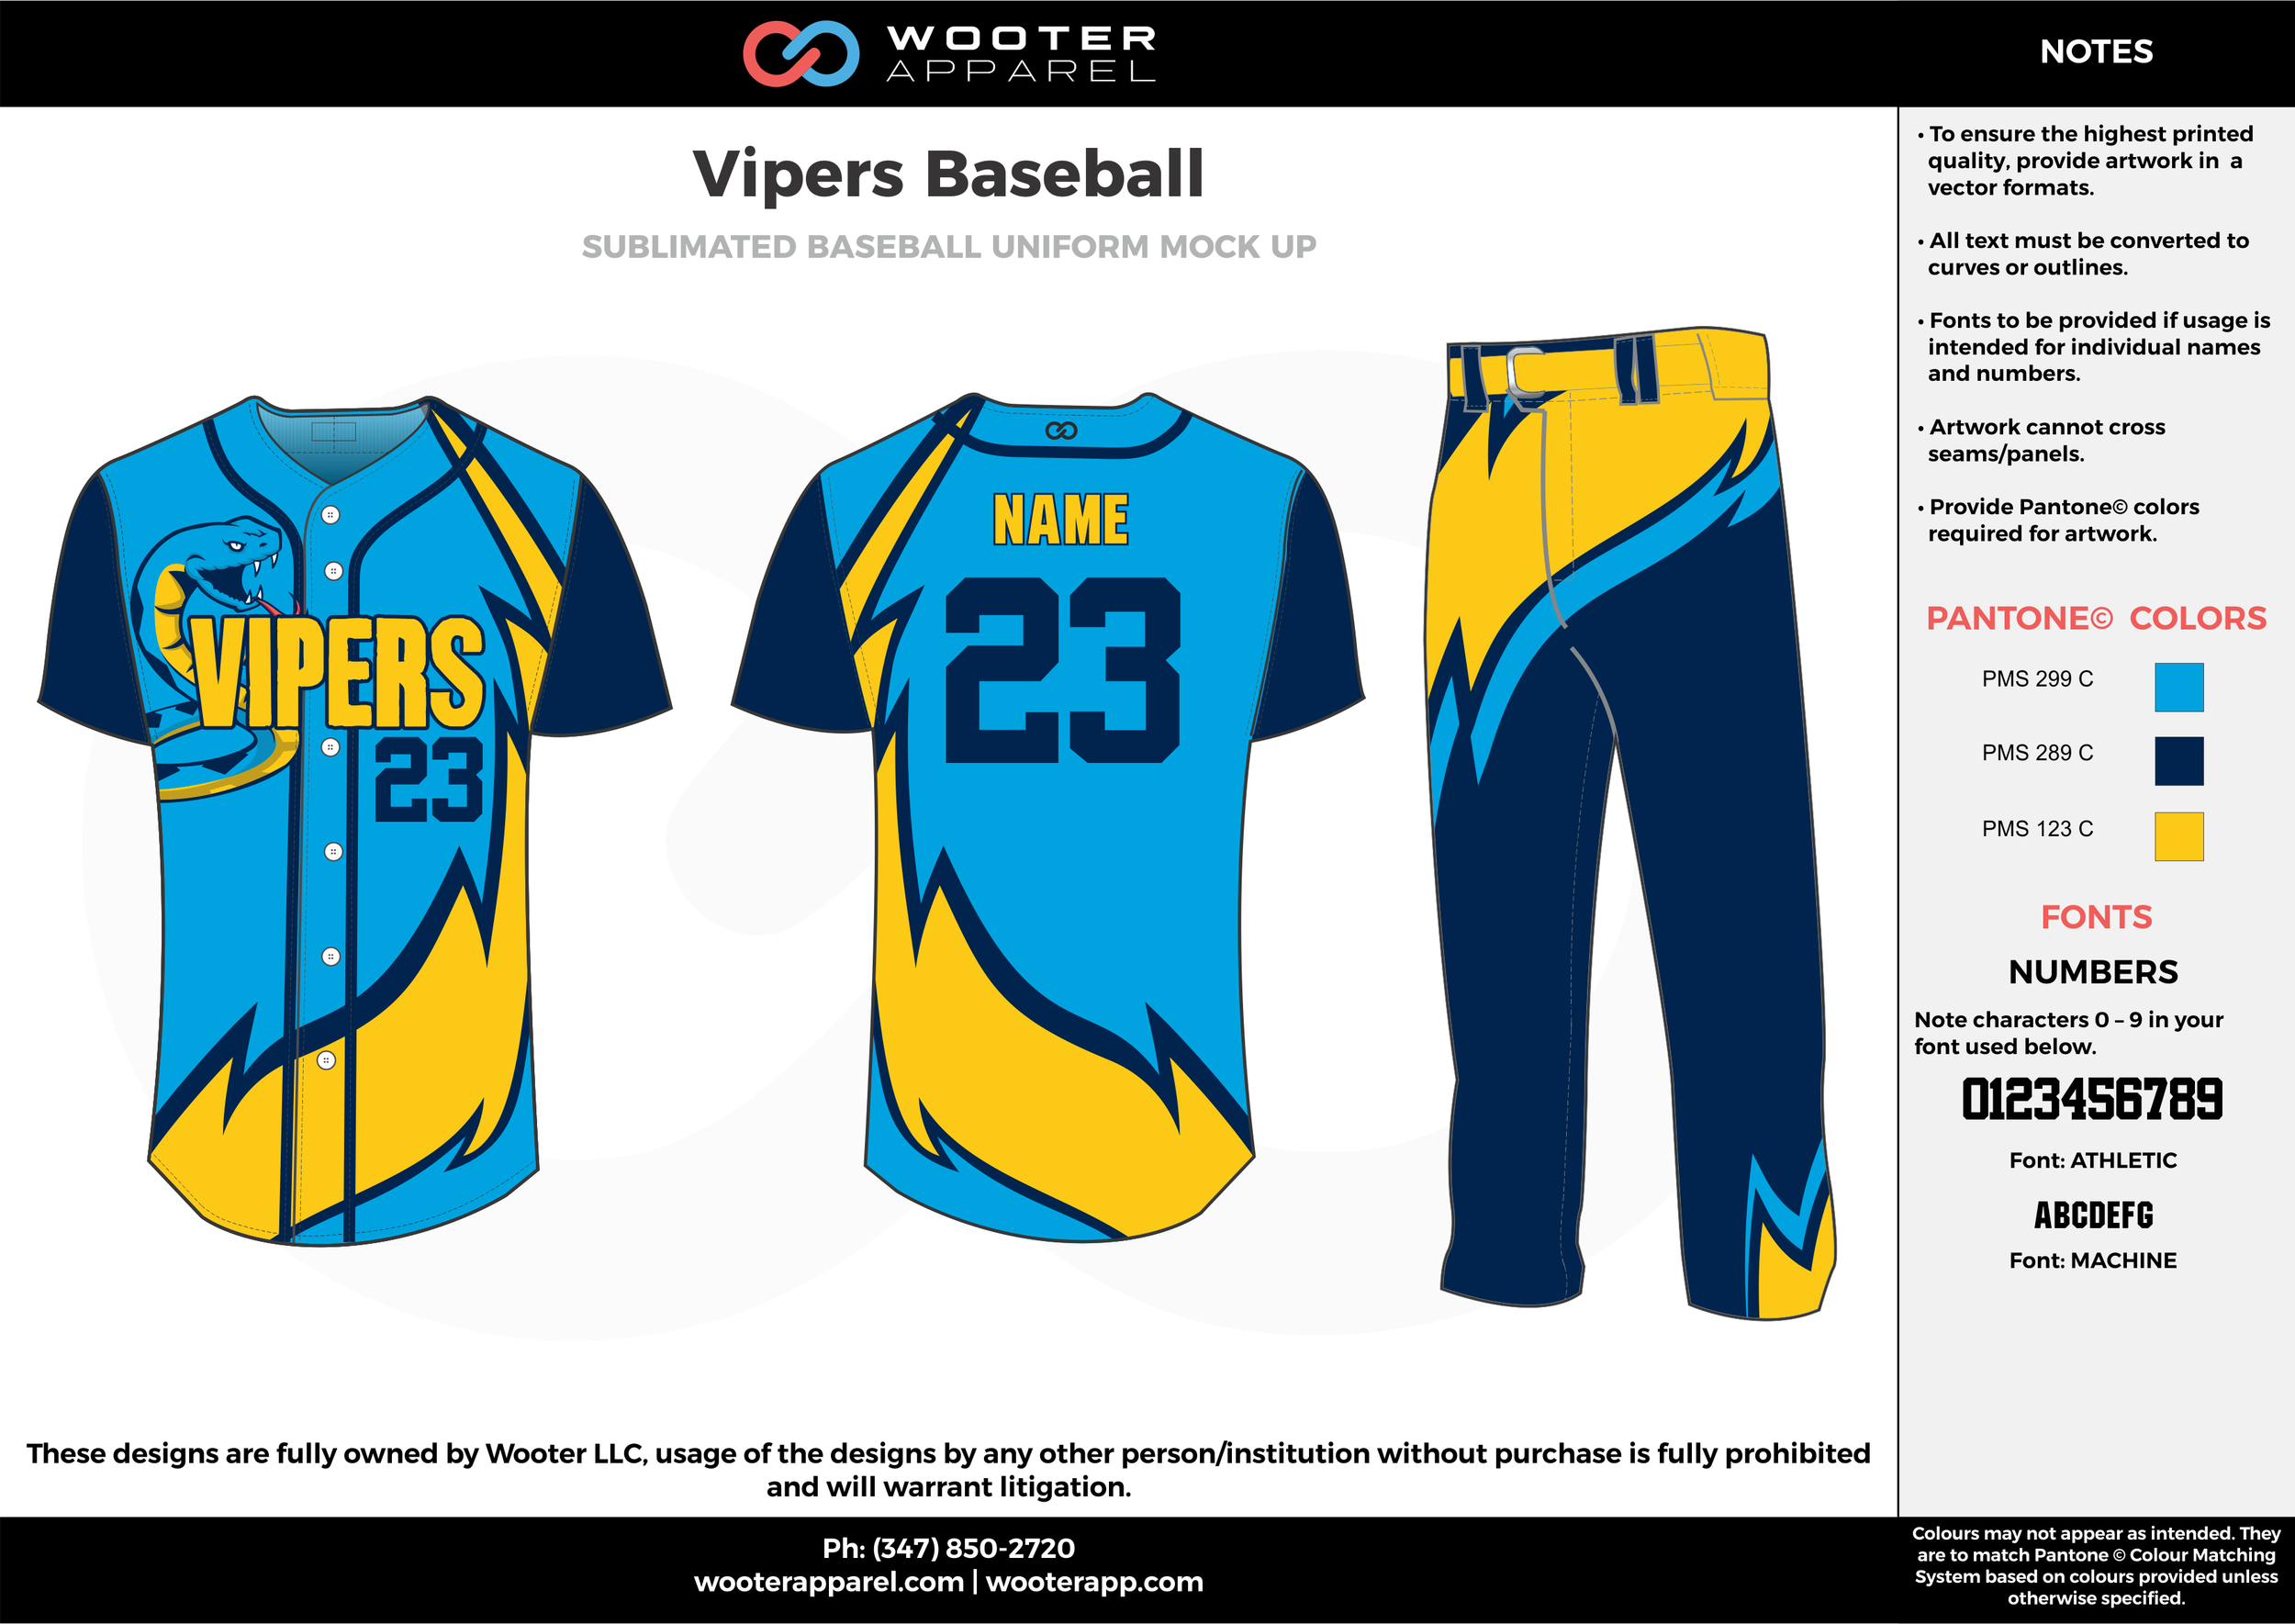 VIPERS BASEBALL lightblue darkblue yellow baseball uniforms jerseys pants